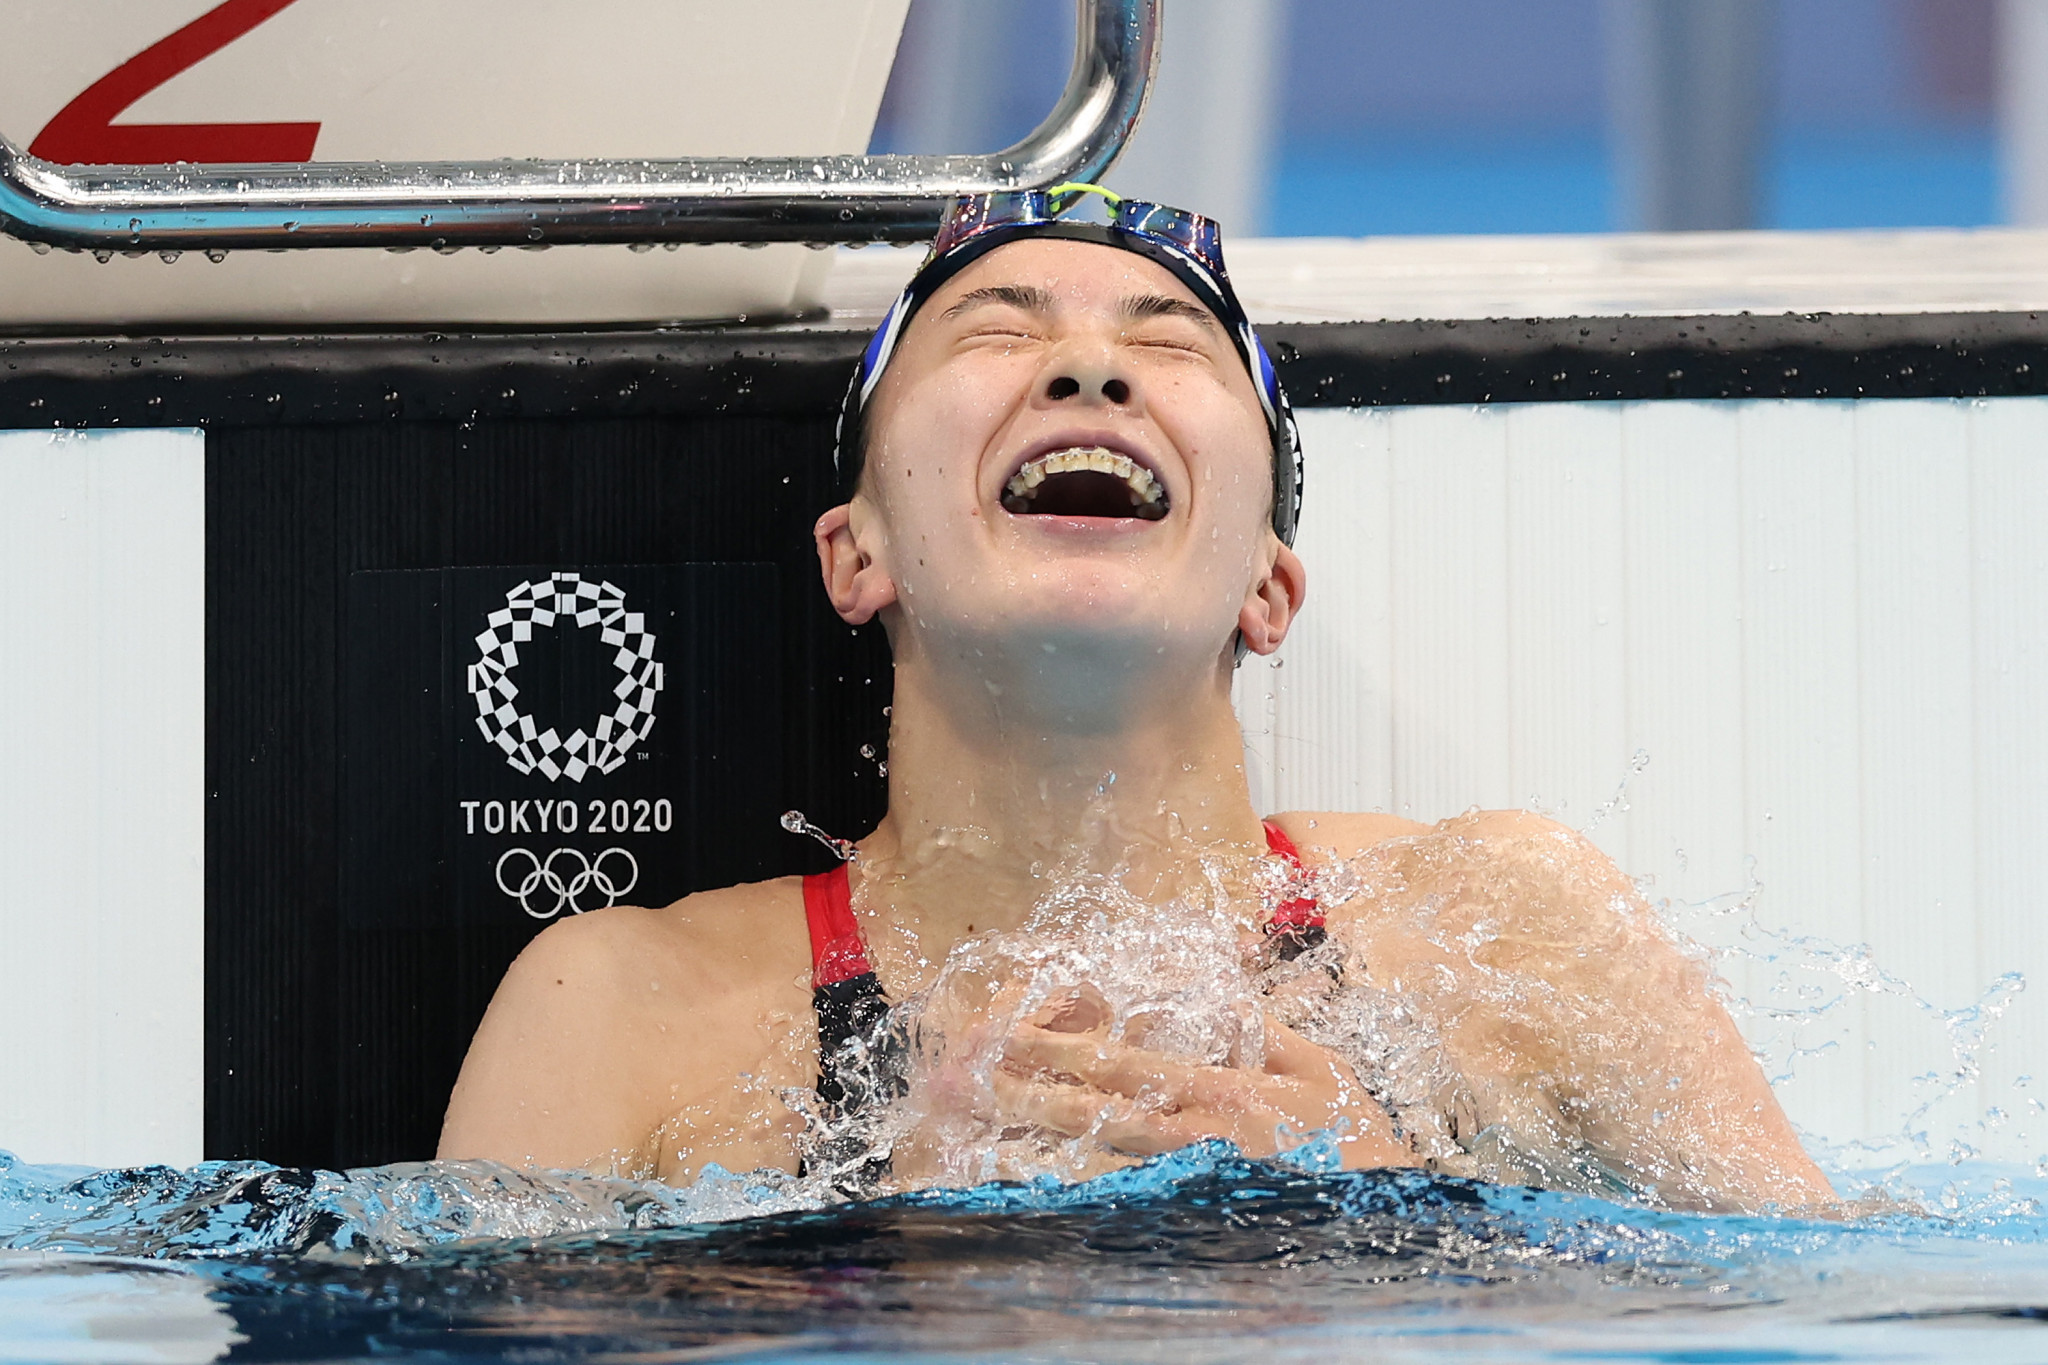 Yui Ohashi became a double Tokyo 2020 champion for hosts Japan ©Getty Images